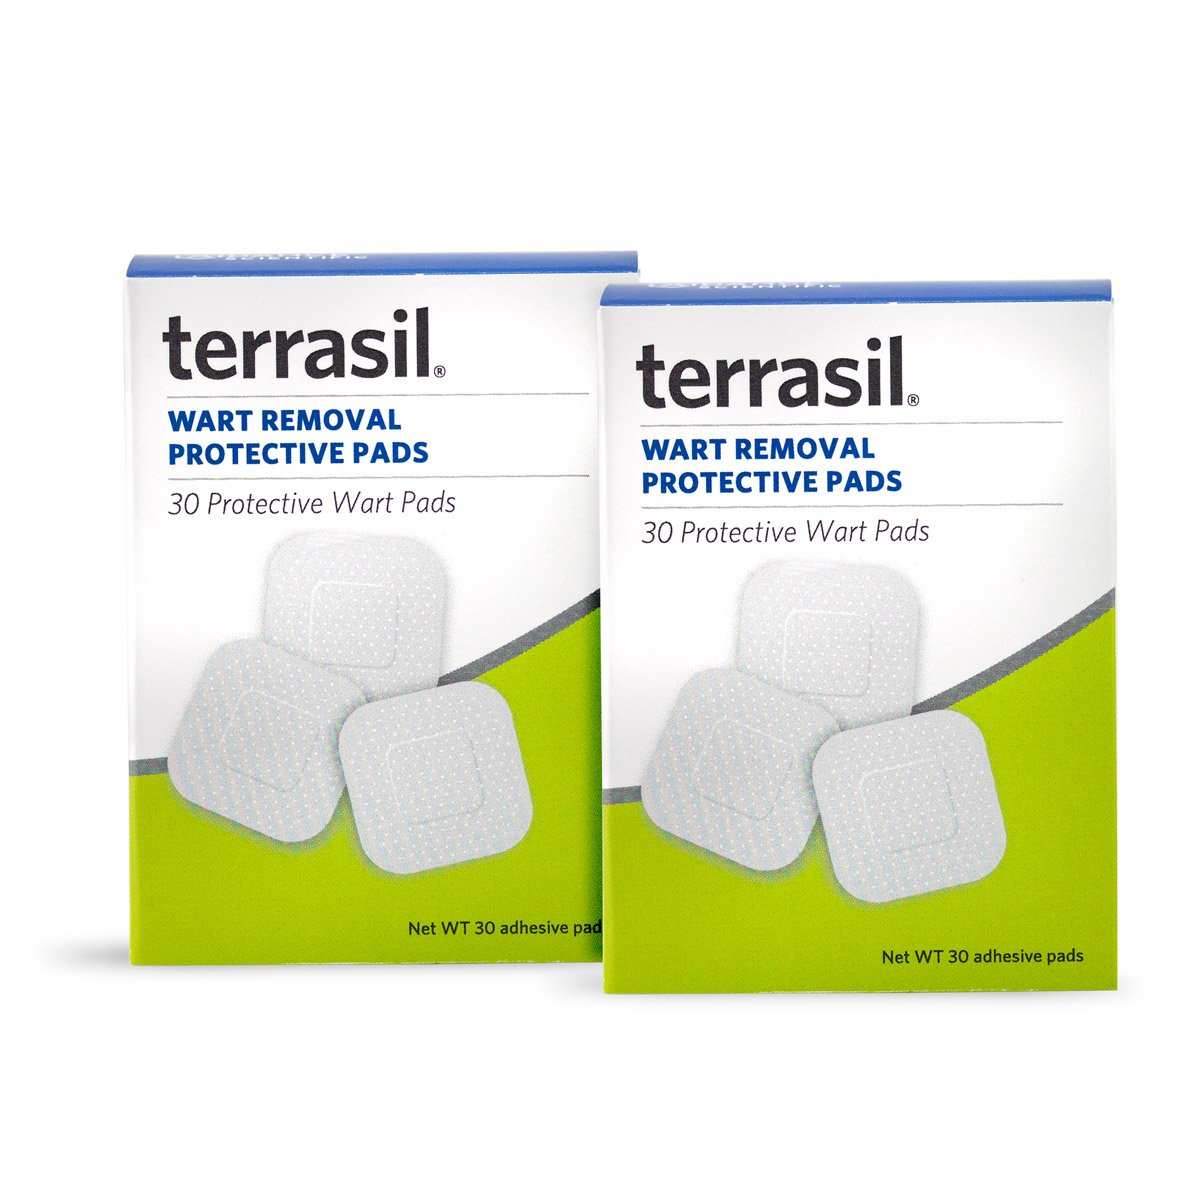 Permanent Wart Remover Pads - Slow Safe Gentle Alternative for Sensitive Skin Dr Recommended Guaranteed All Natural Pain Free Salicylic Acid Free Patented for Plantar Genital Facial by Terrasil by Aidance Skincare & Topical Solutions